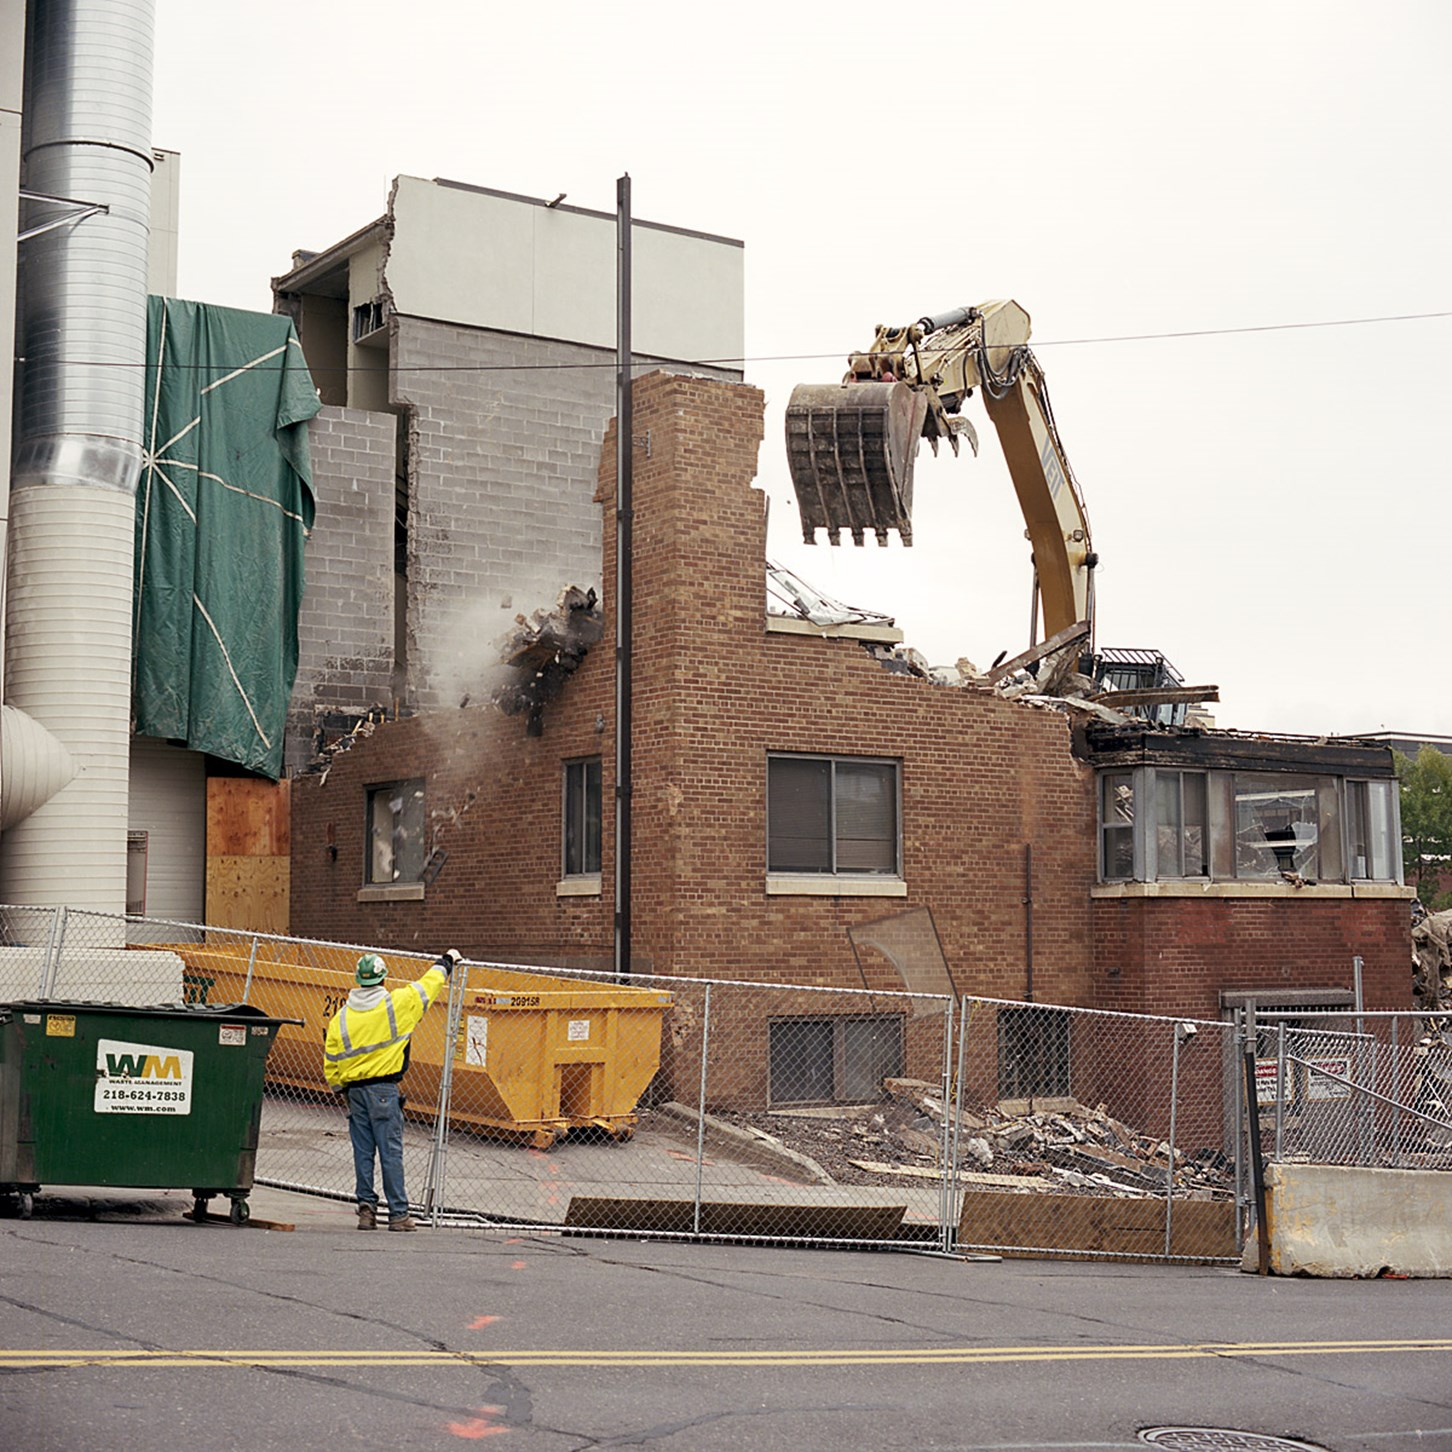 Shoreview Building Demolition, Duluth, Minnesota, September 2013